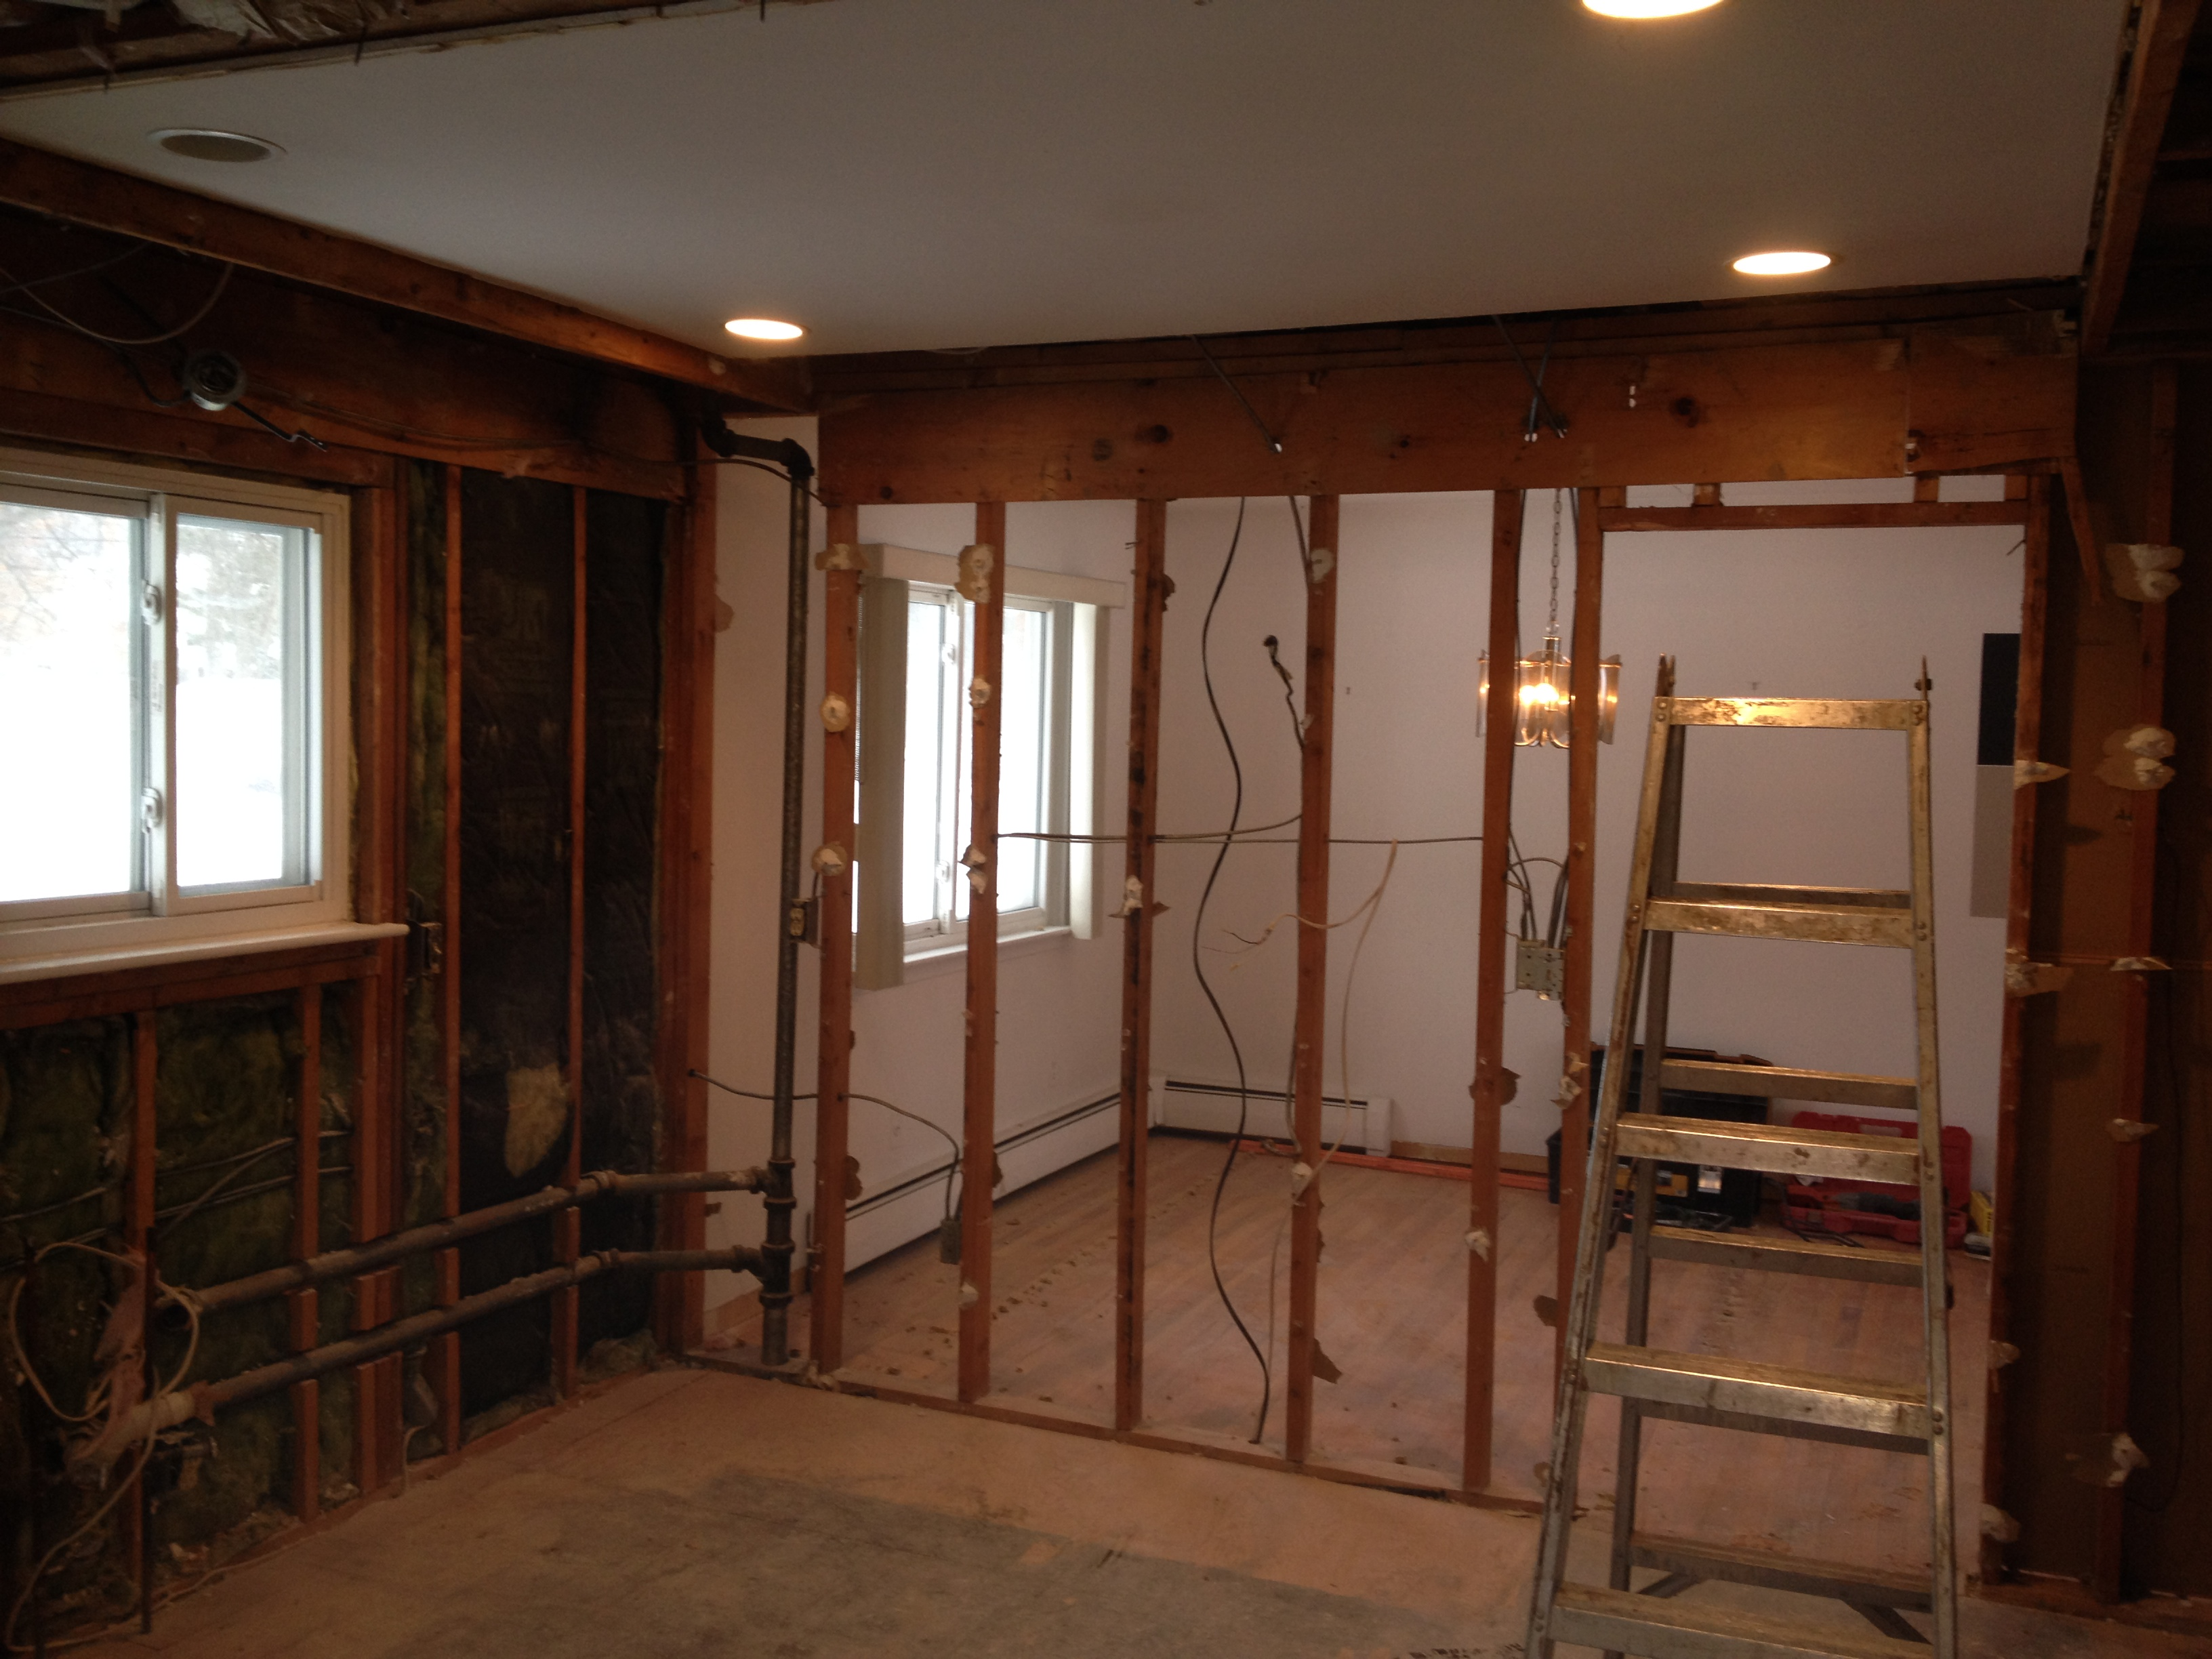 Opening up the New Kitchen area